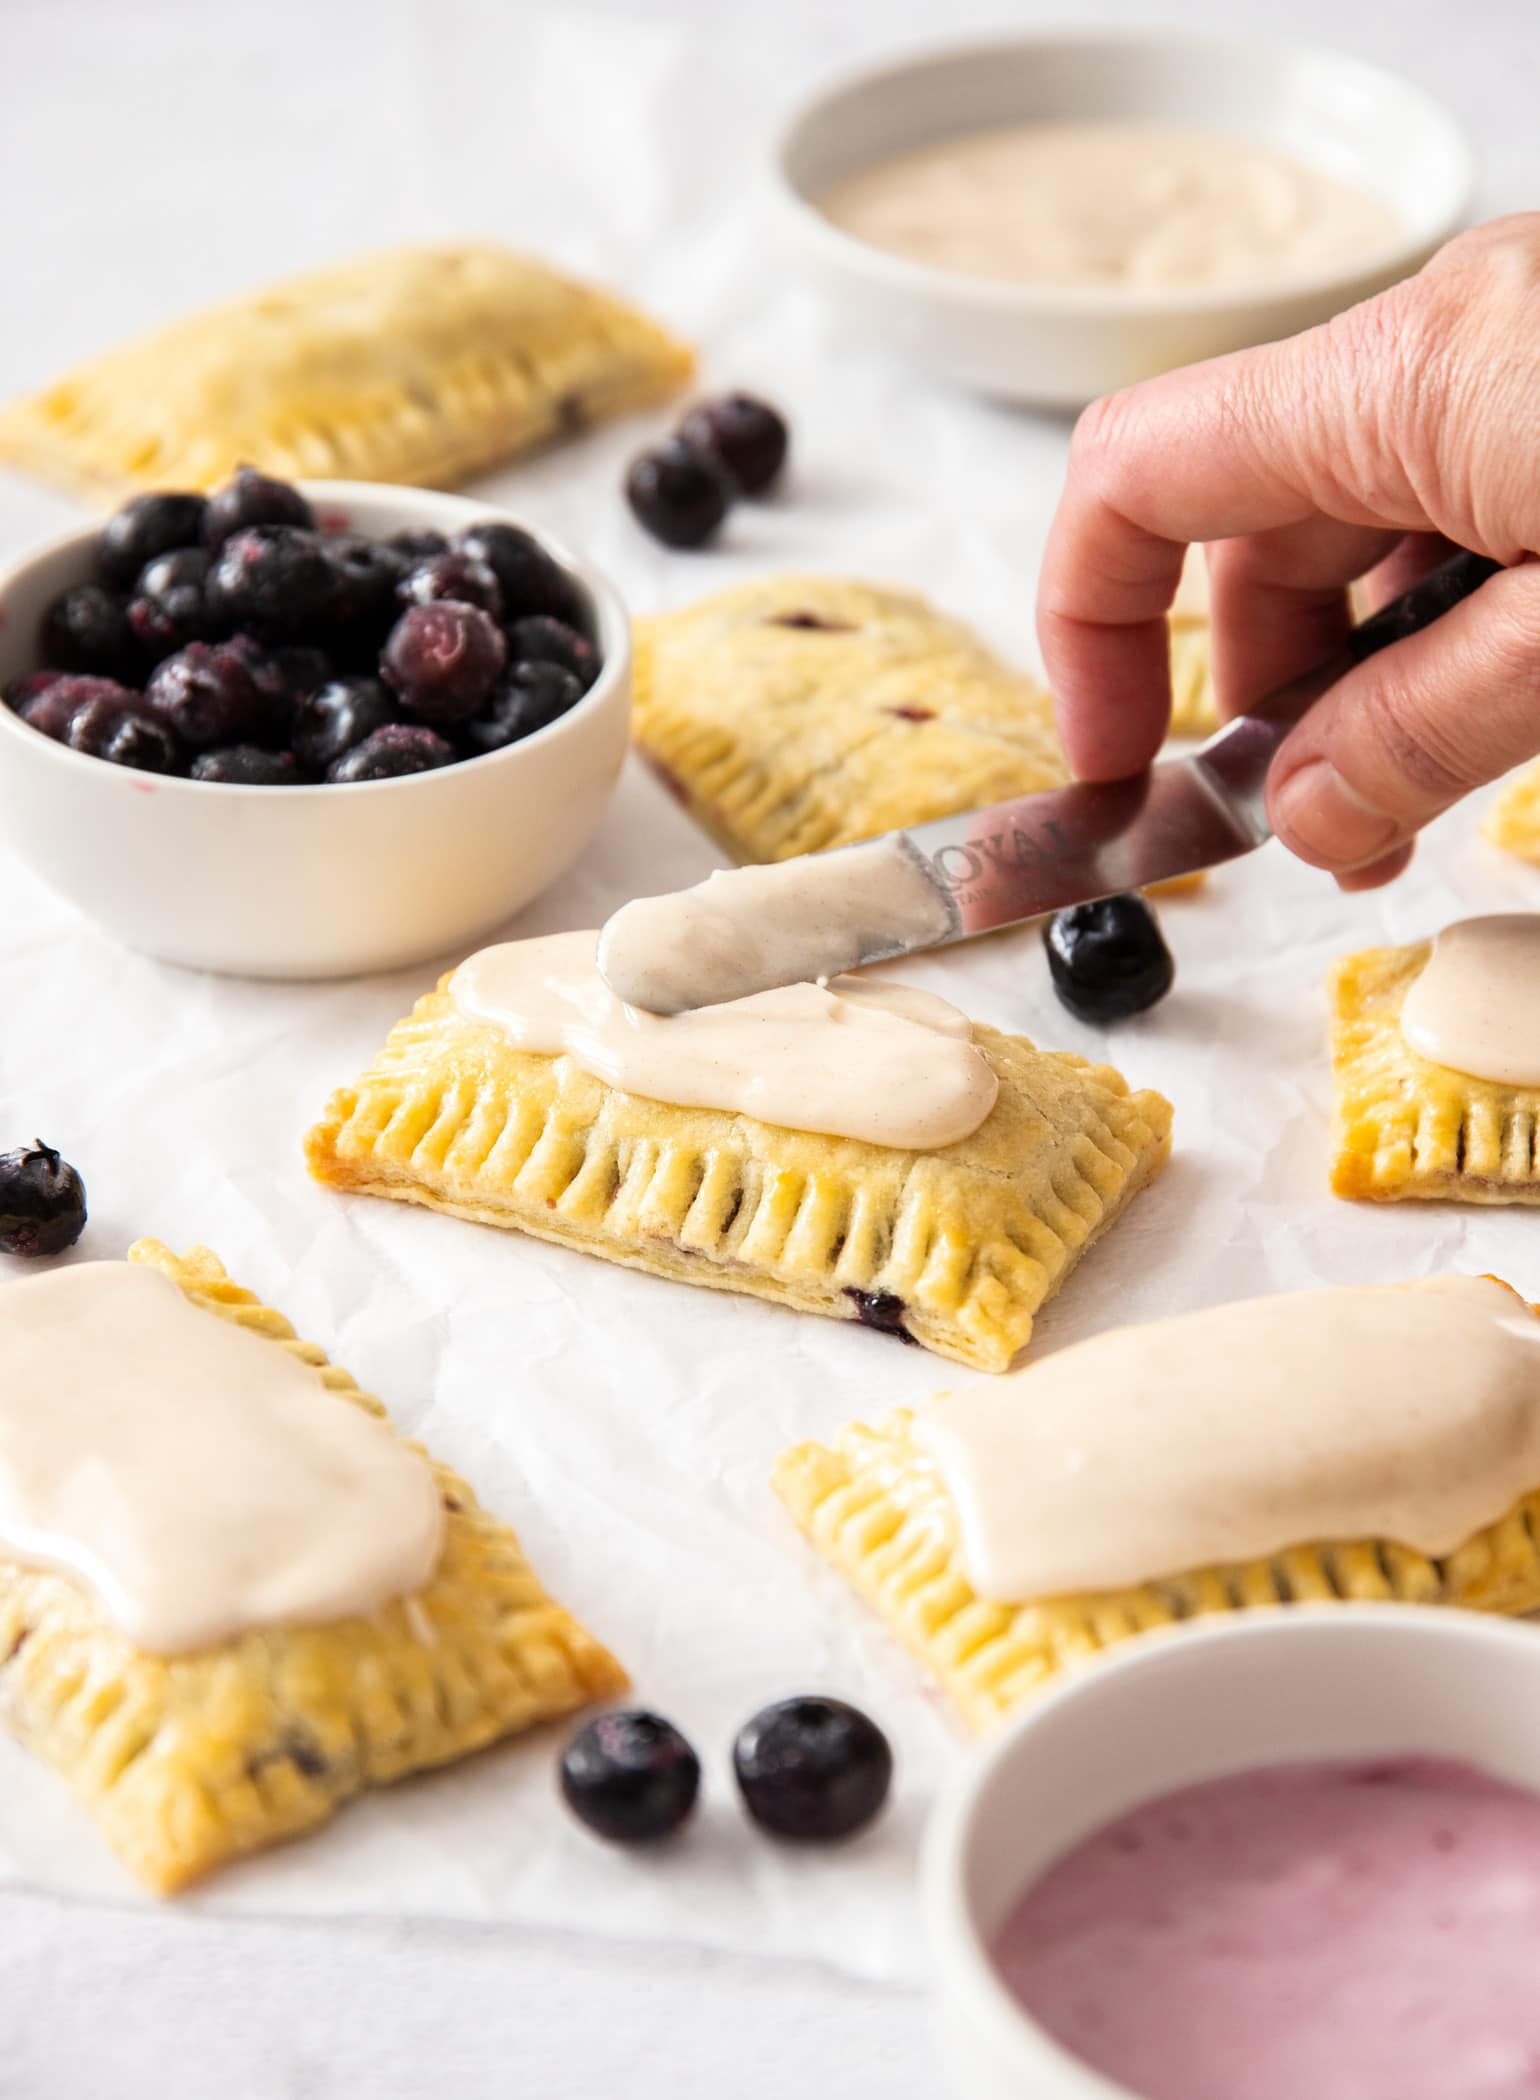 homemade pop tarts being spread with icing. A small white bowl filled with blueberries to the side.